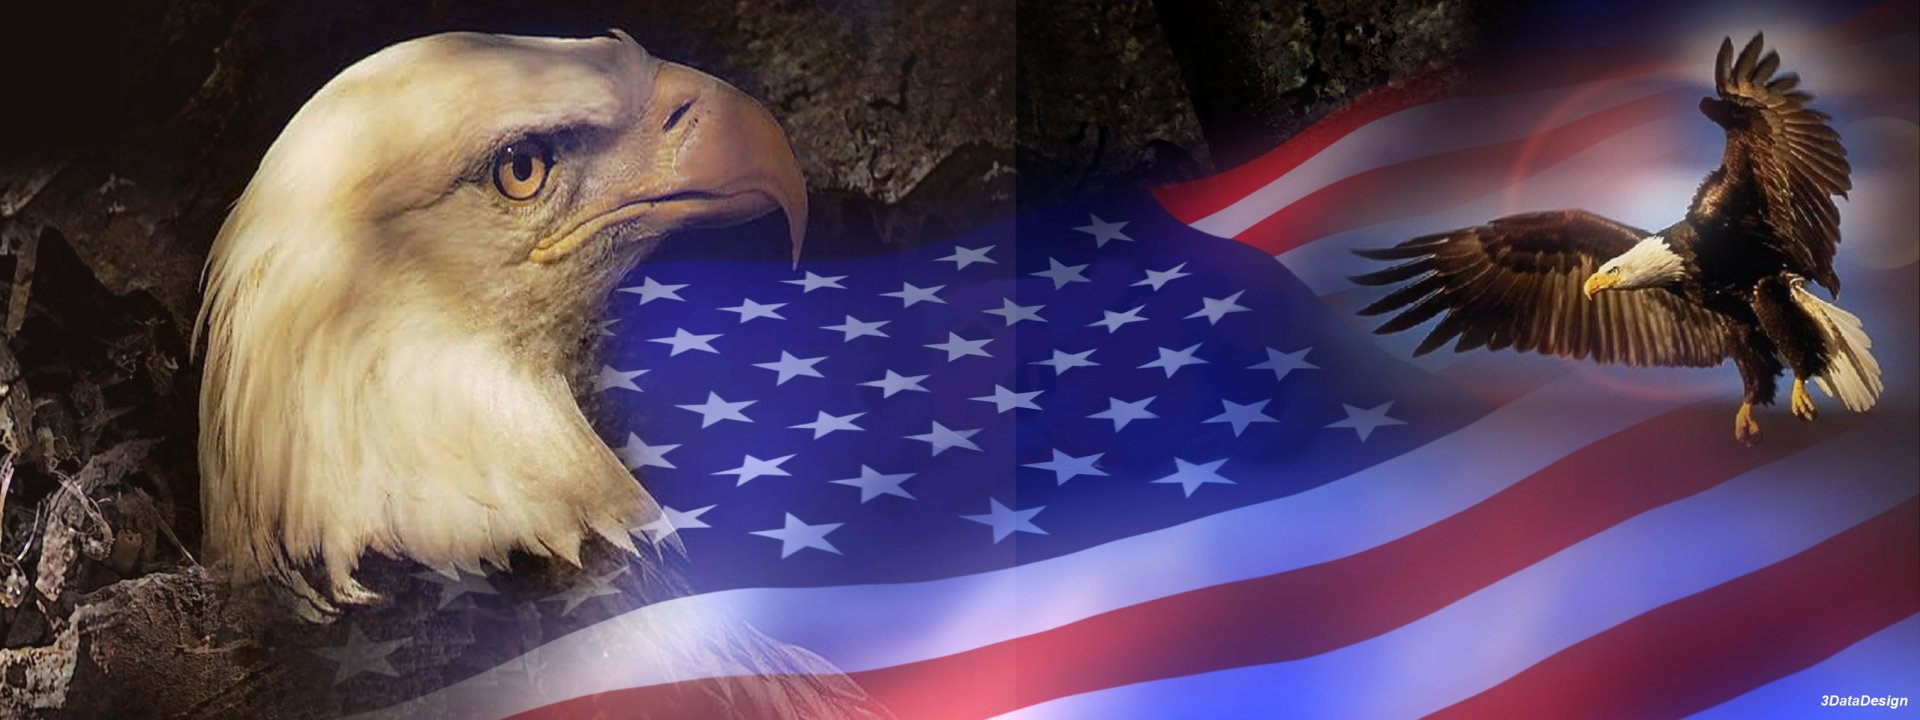 Misc - Patriotic  Eagle Bird Wallpaper